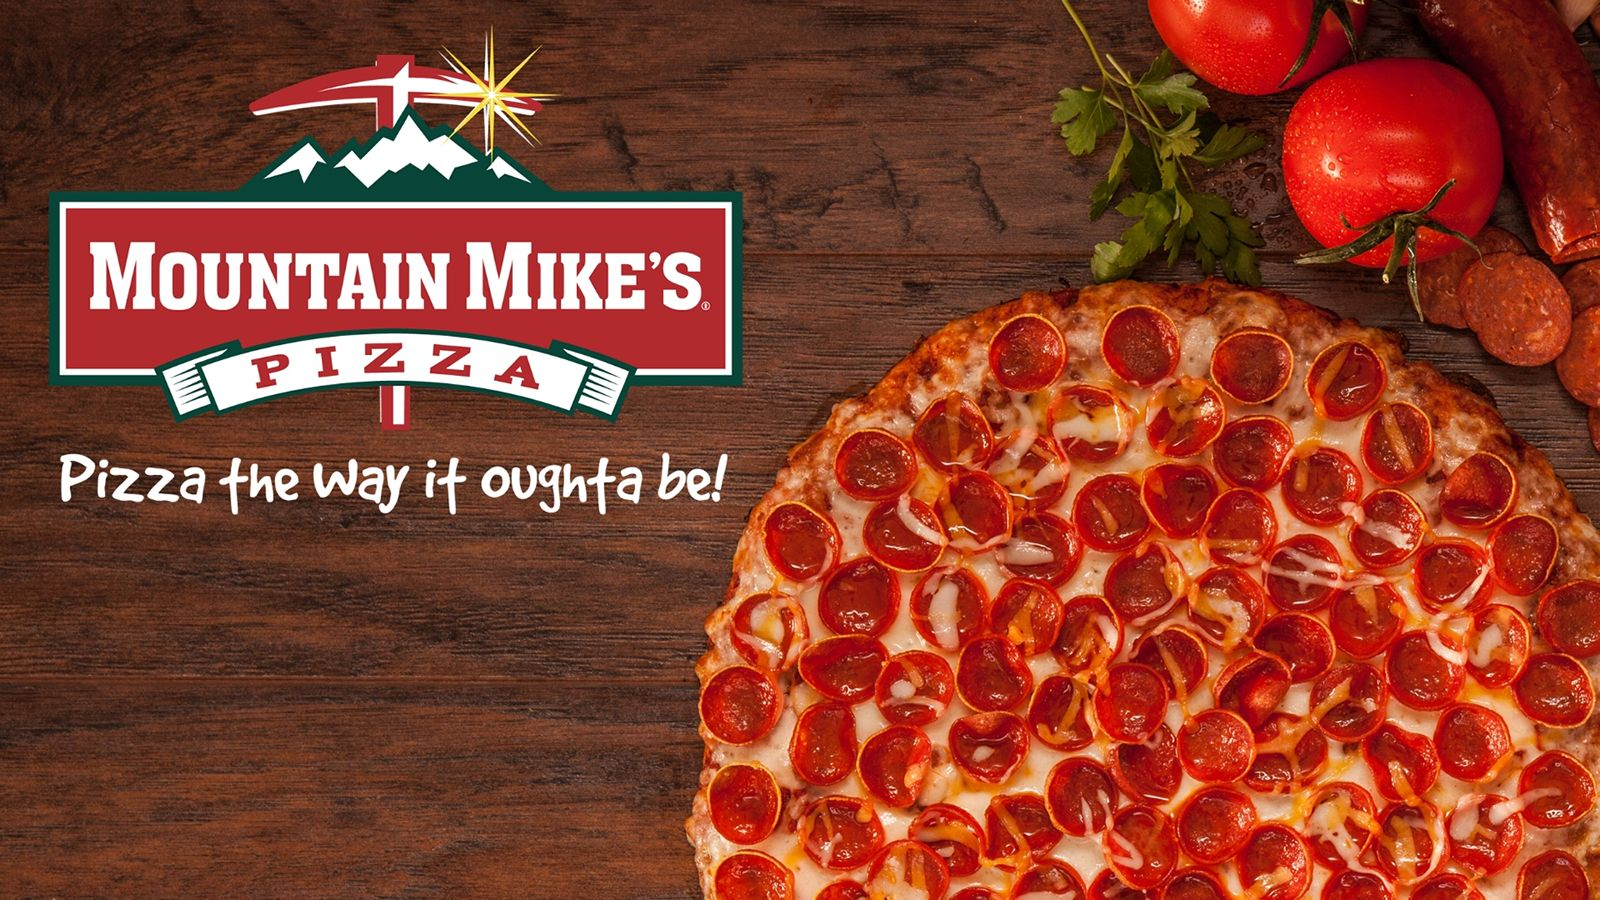 Mountain Mike's Pizza Opens First Location in Menifee